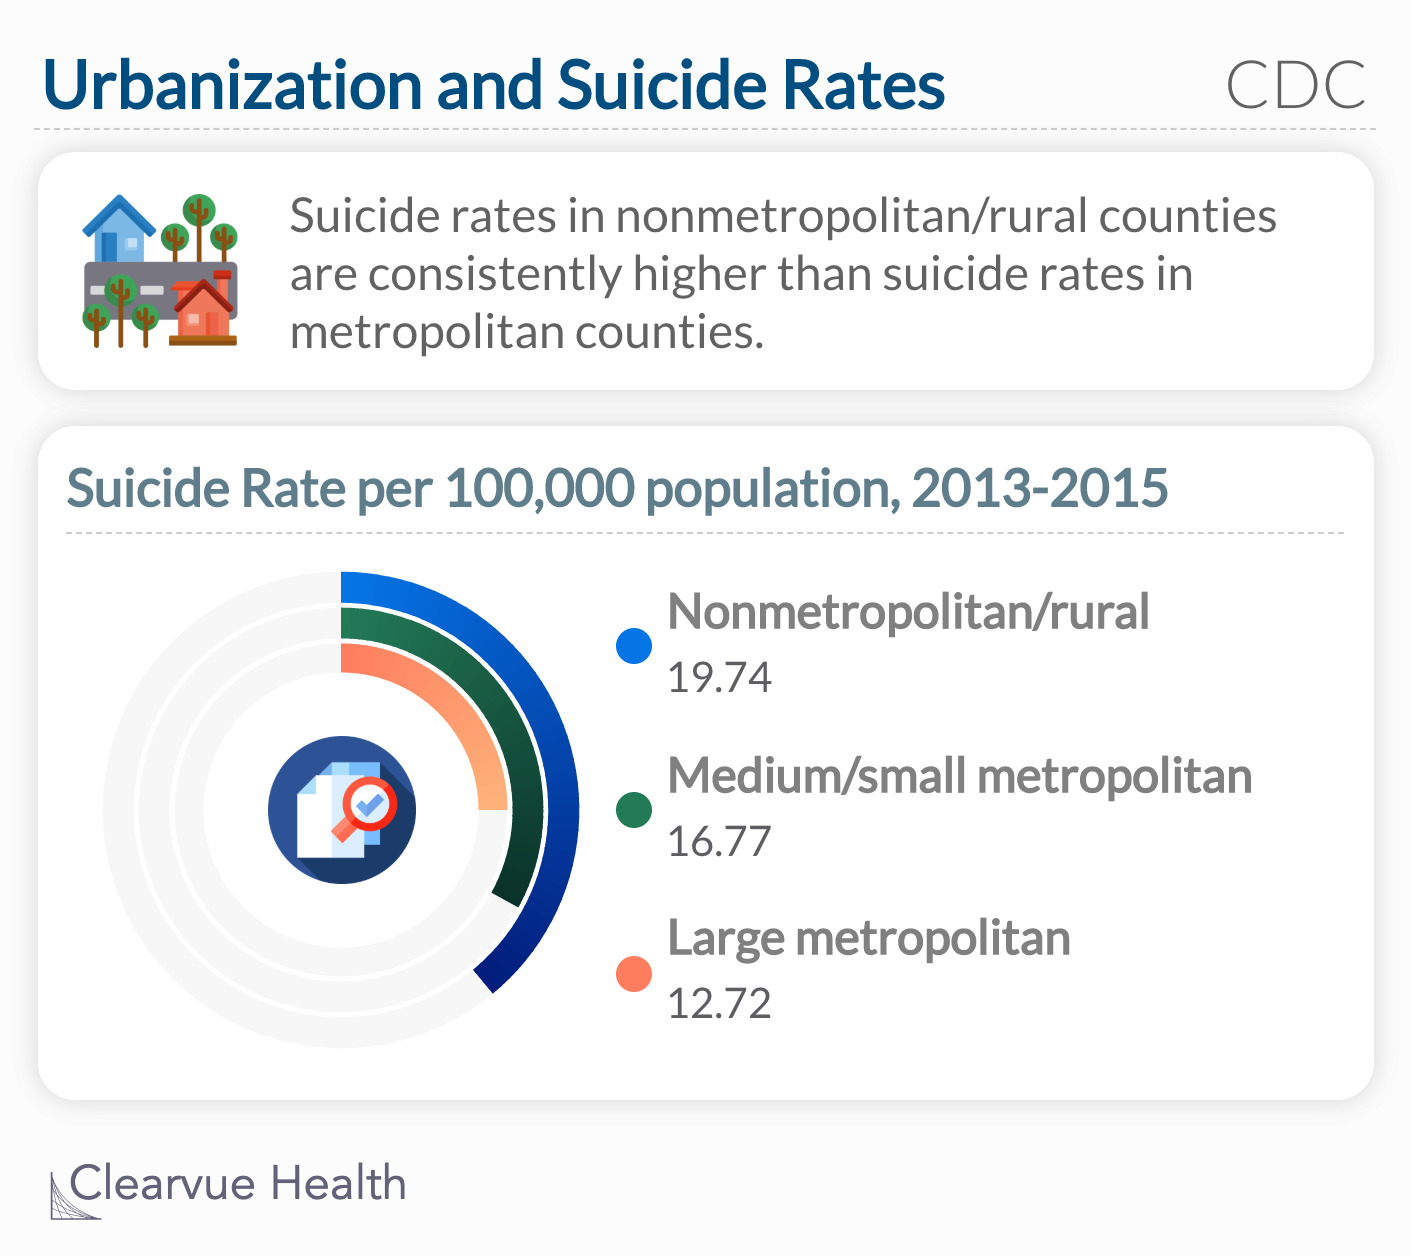 Suicide rates in nonmetropolitan/rural counties are consistently higher than suicide rates in metropolitan counties.